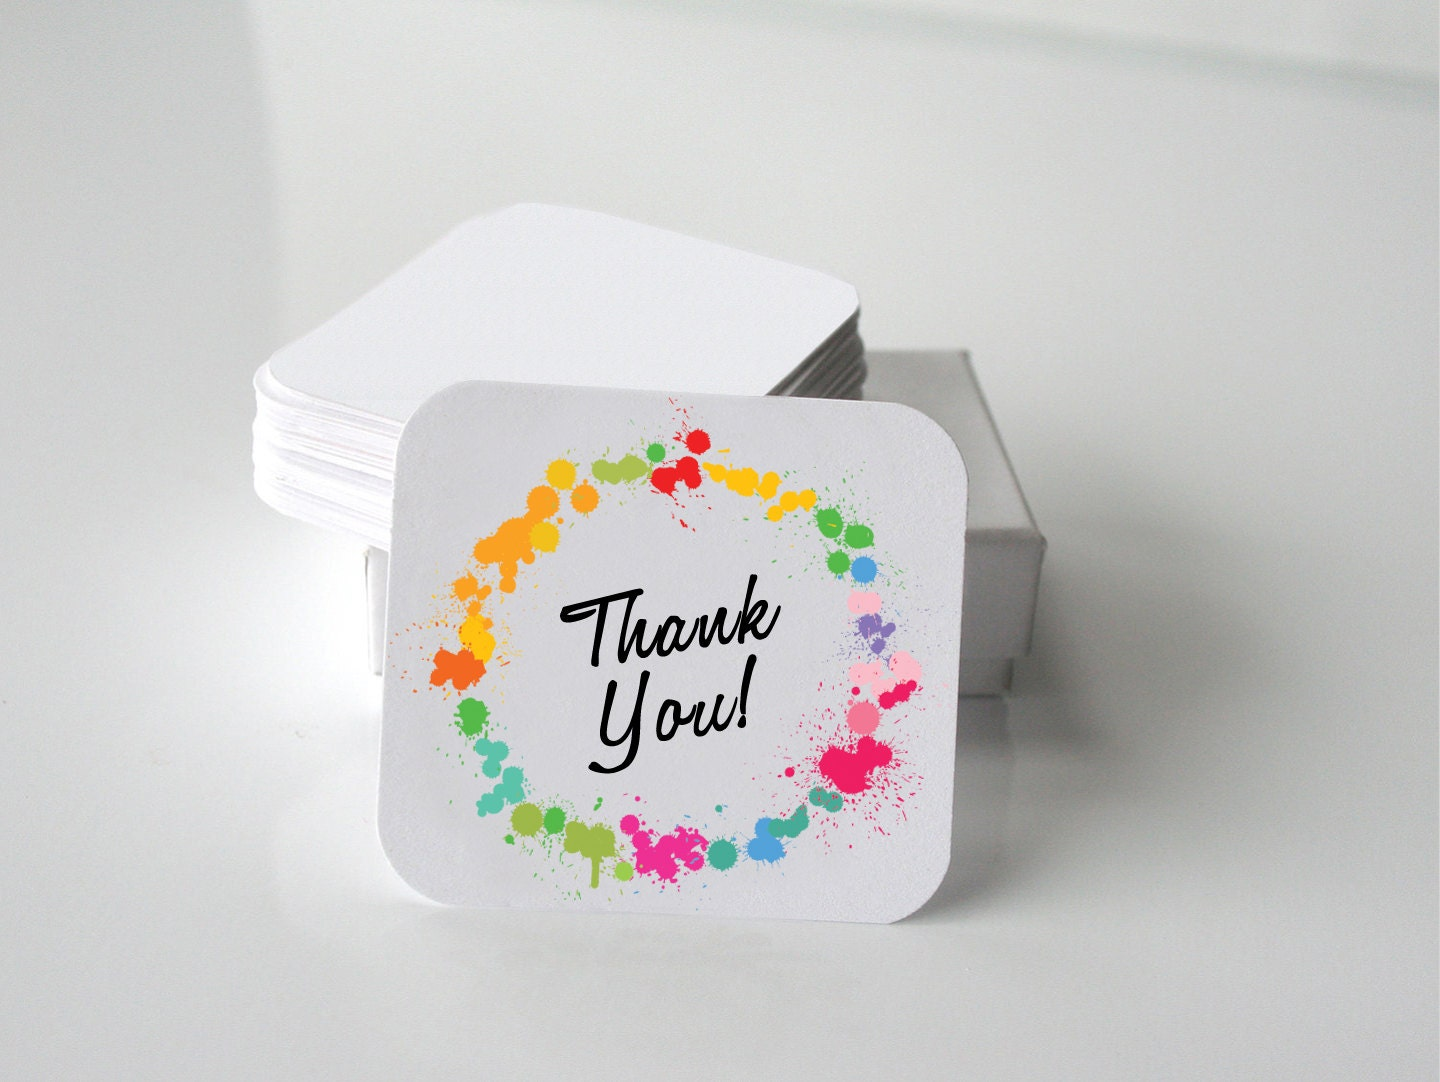 Thank a loved one, friend or even a complete stranger for their kindness, generosity, gifts or support with personalized thank you cards from Shutterfly. How to Personalize Your Thank You Cards With Shutterfly, it's easy to bring a personal touch to your thank you notes.